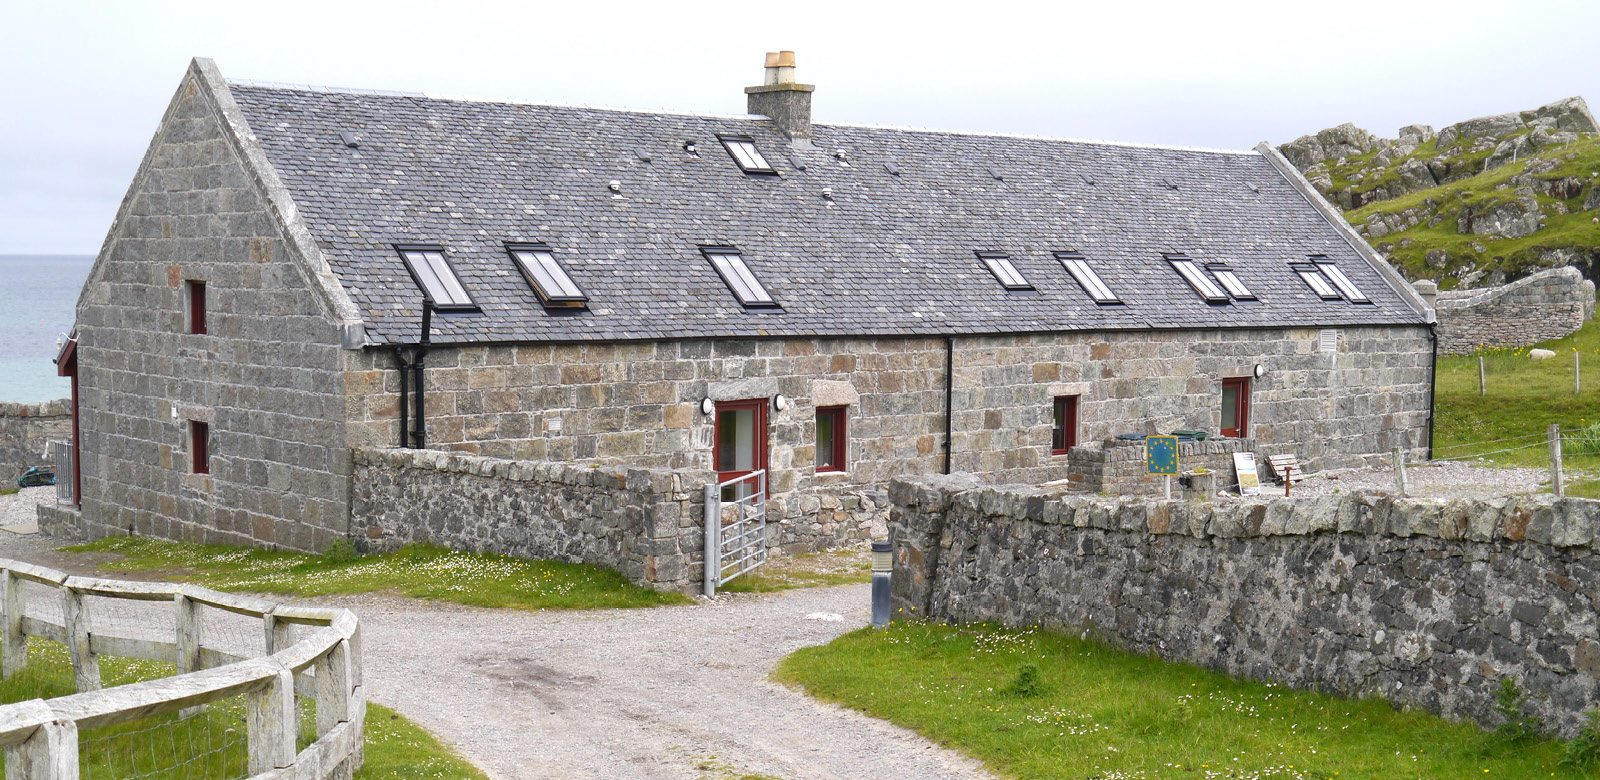 Architects Edinburgh, Ross Smith and Jameson conservation project Alan Stevenson House, Isle of Tiree